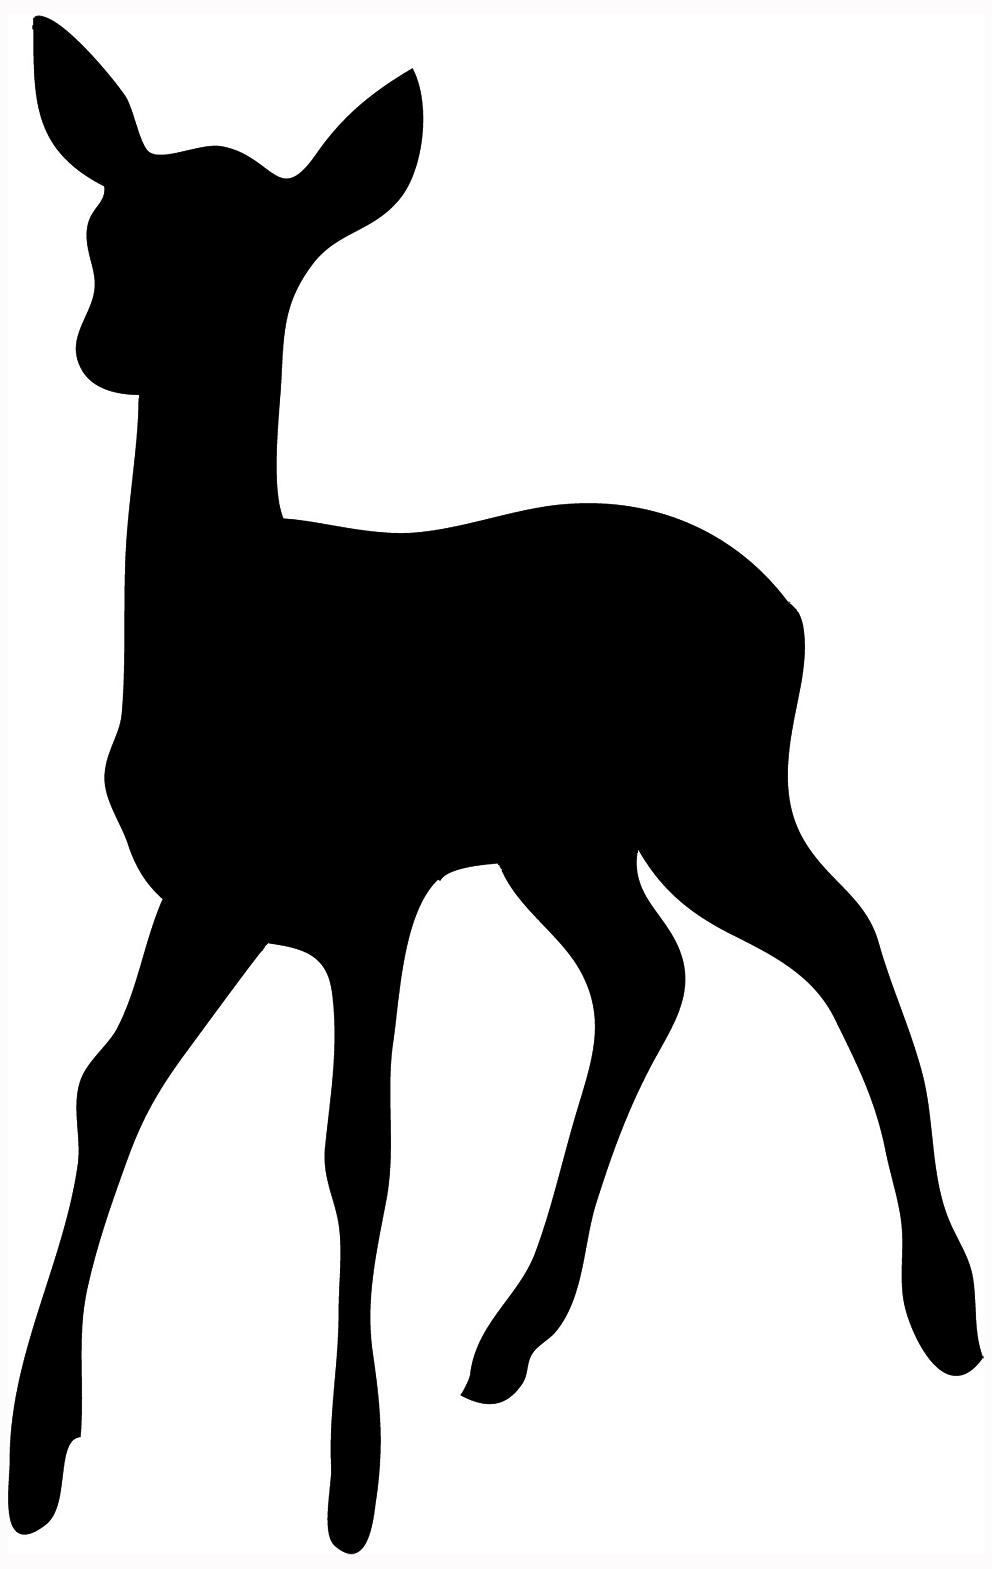 992x1569 Deer Outline Clipart Black And White